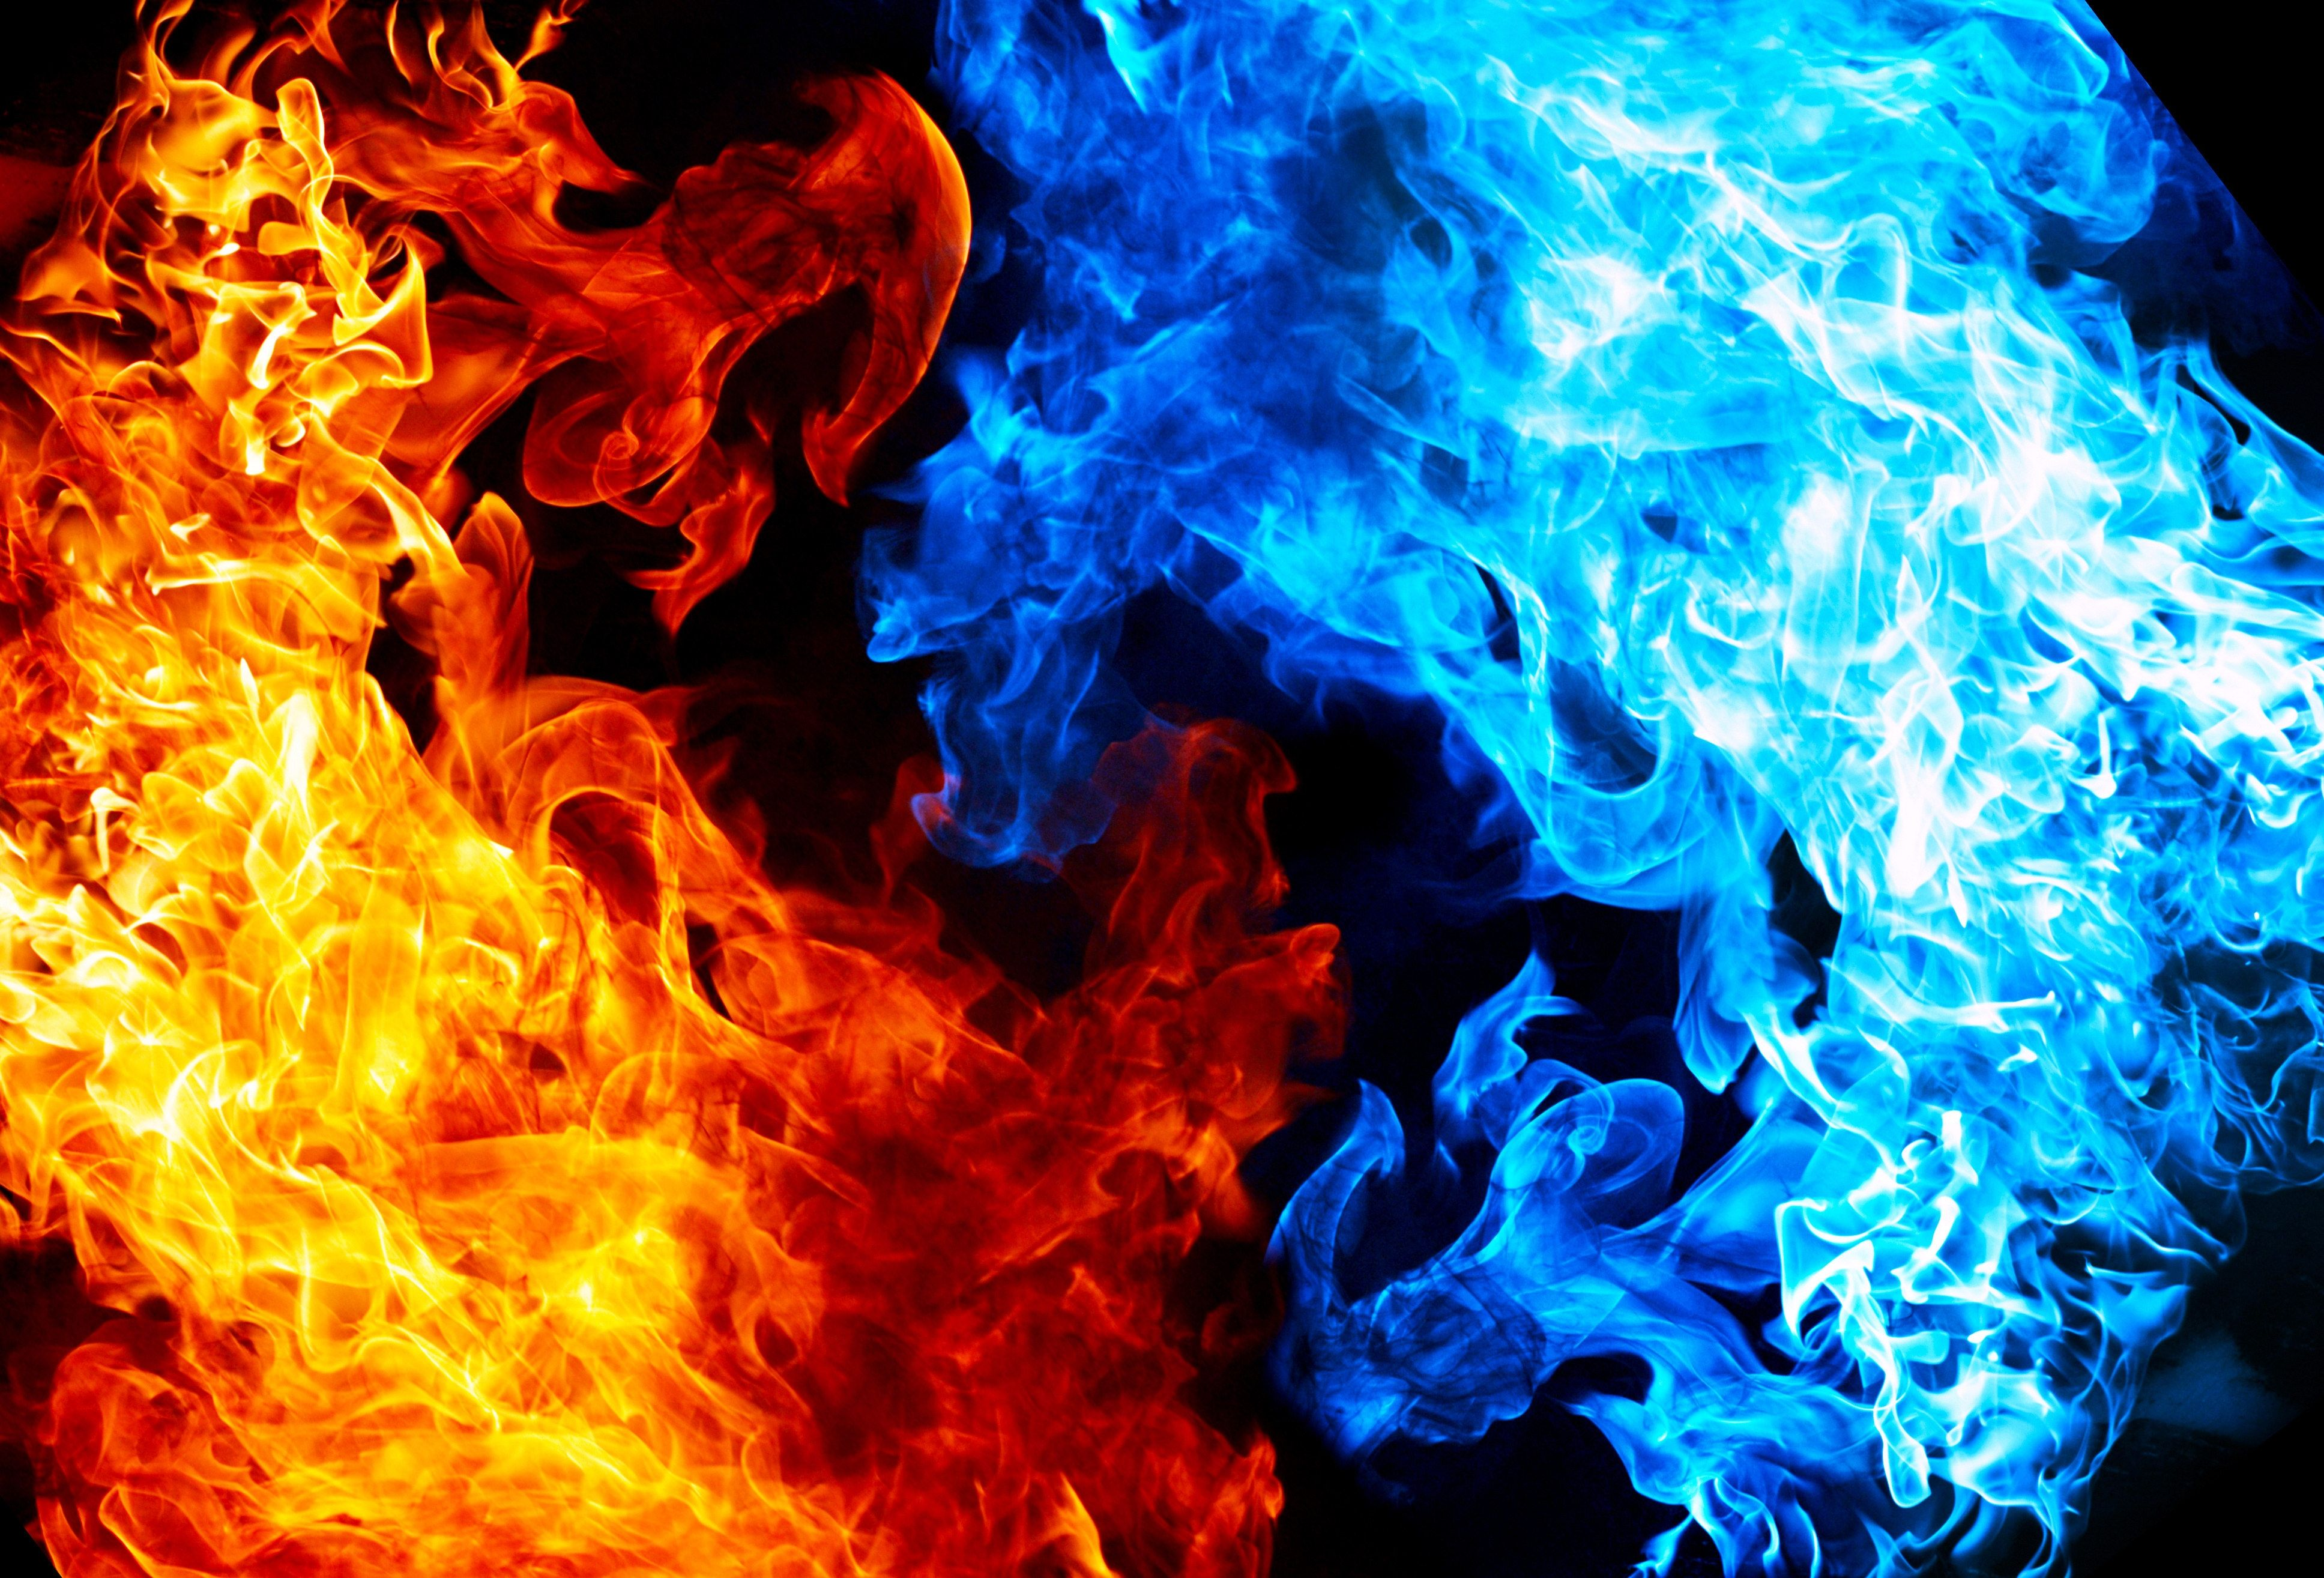 Blue Fire Flames White Background Blue Flames Bl comart in 2019 3871x2628